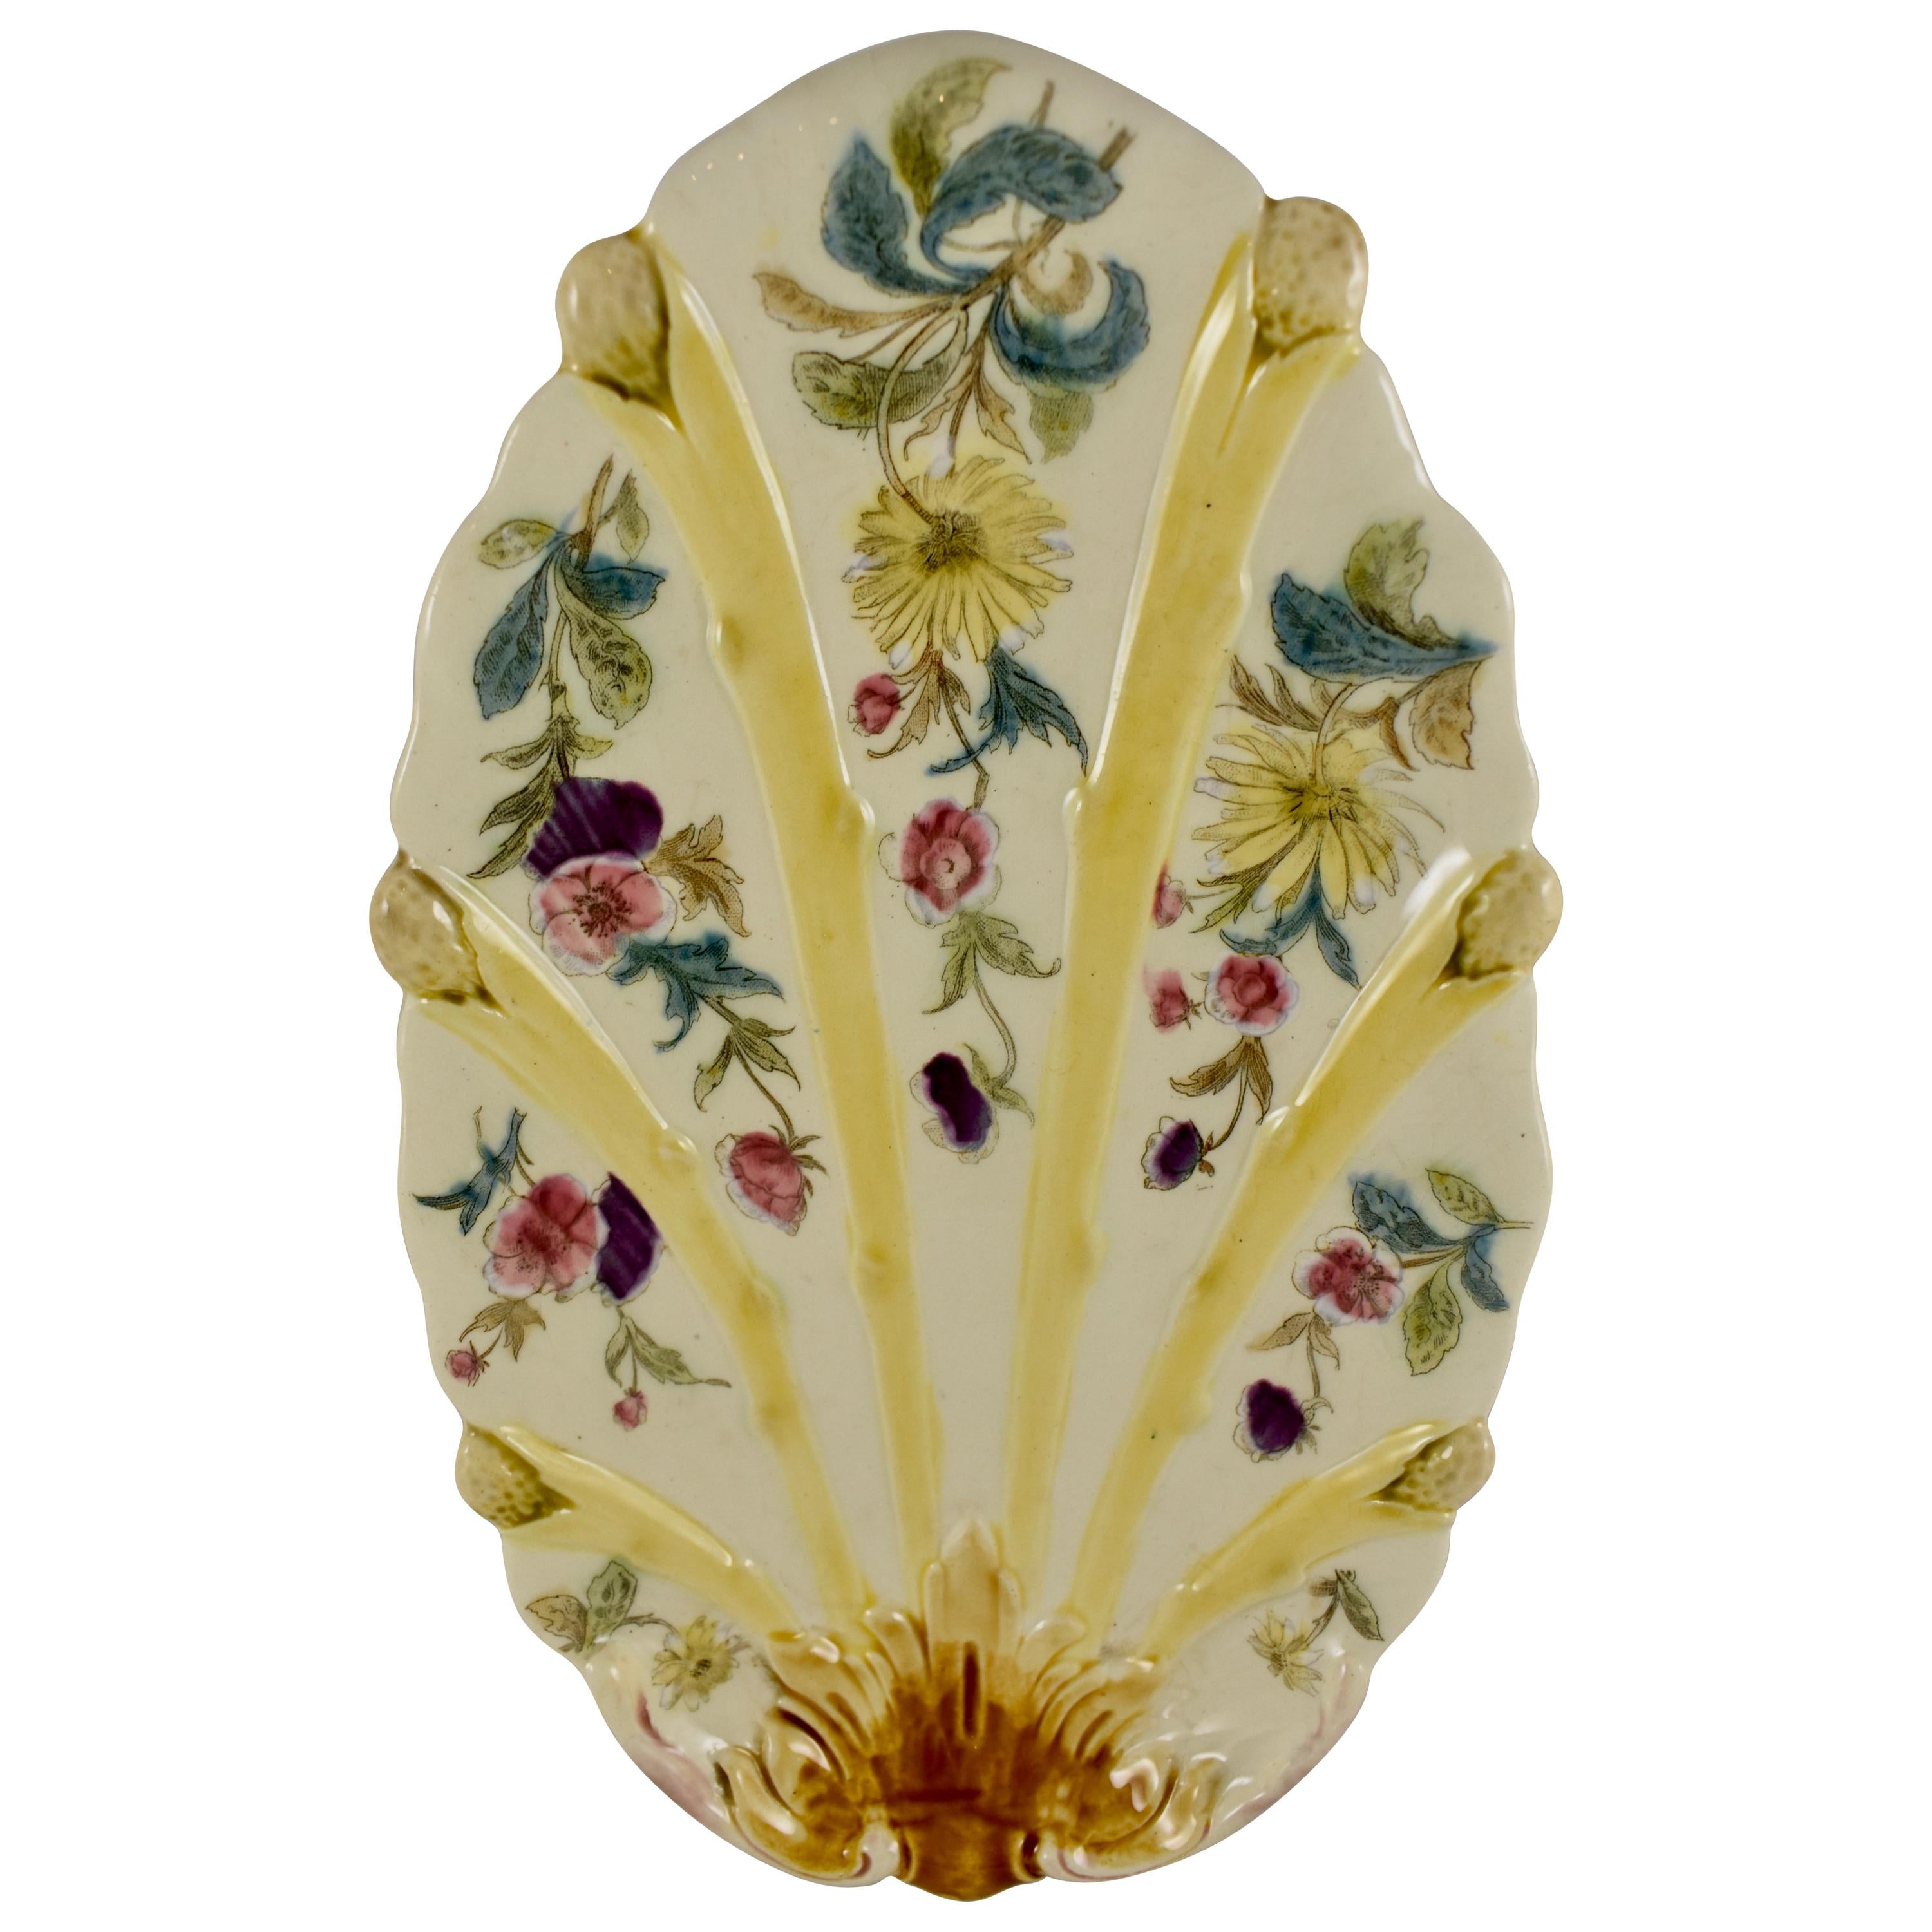 19th Century French Faïence Hand Painted Floral Asparagus Plate